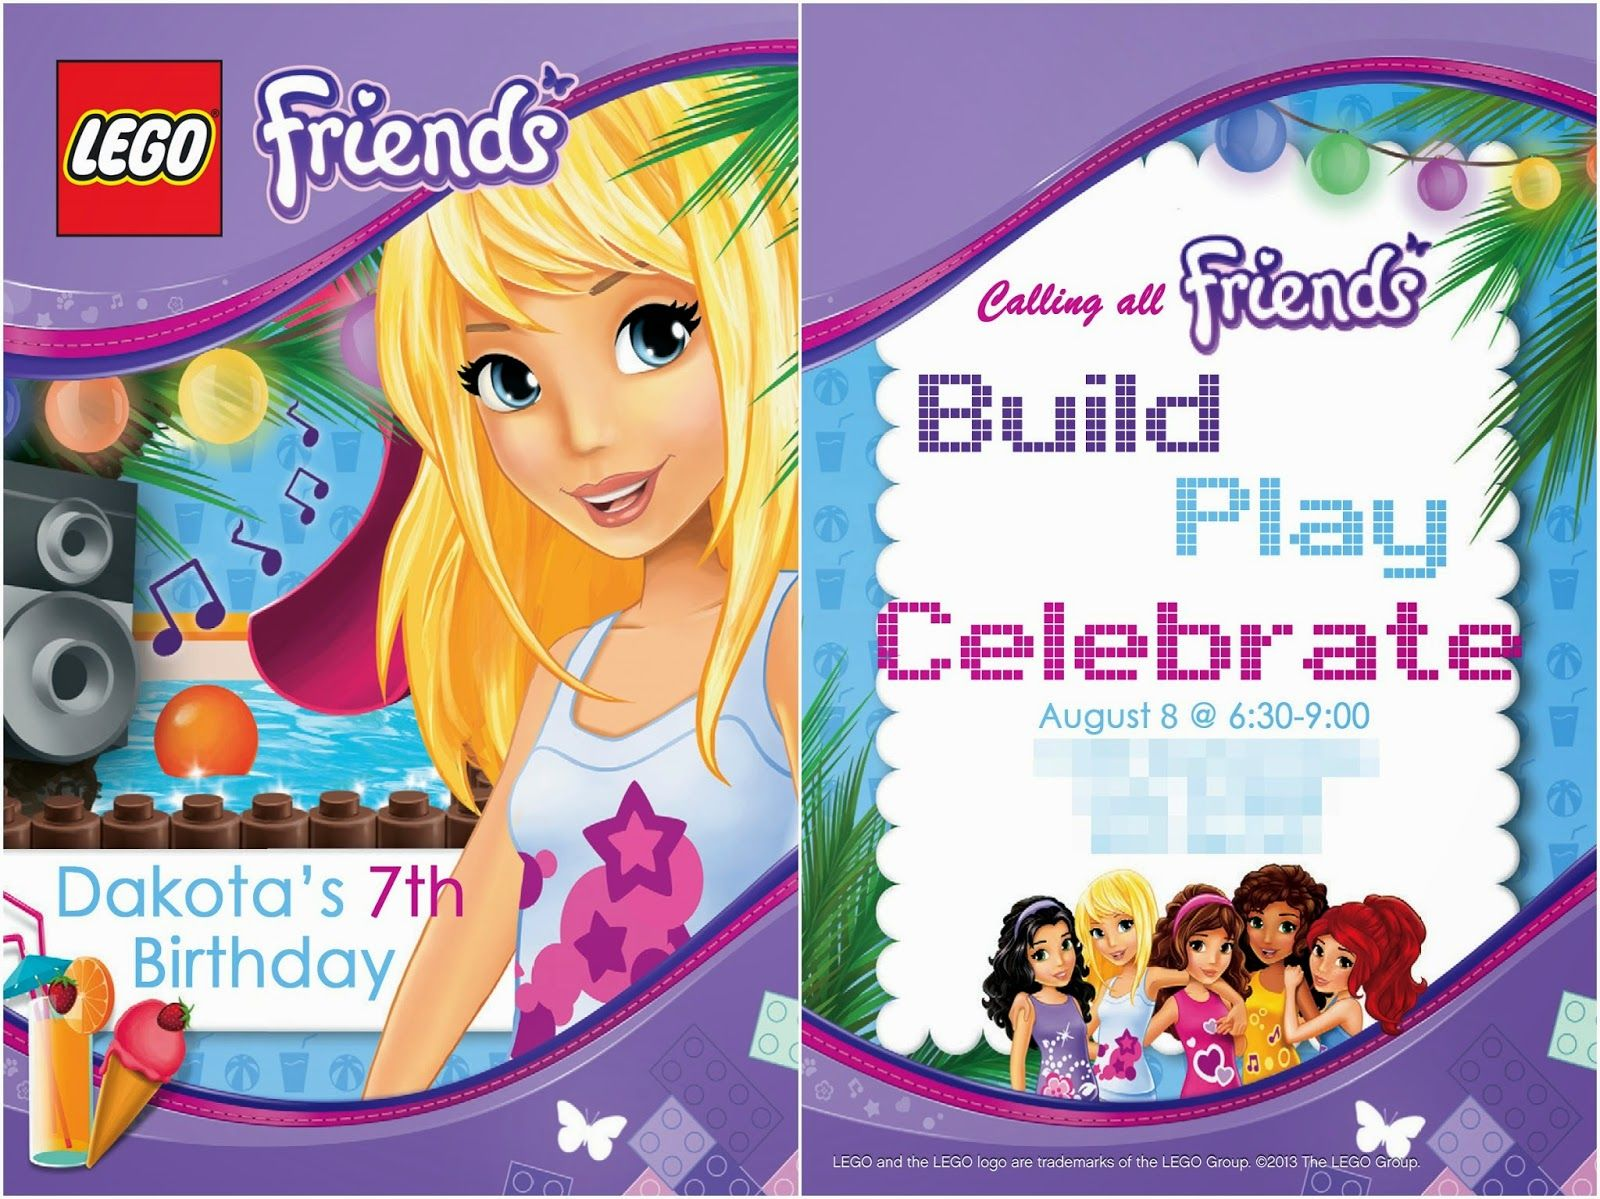 Free lego friends birthday invite add your own text sydney would birthday party invitations free lego friends birthday invite add your own text lego friends birthday lego filmwisefo